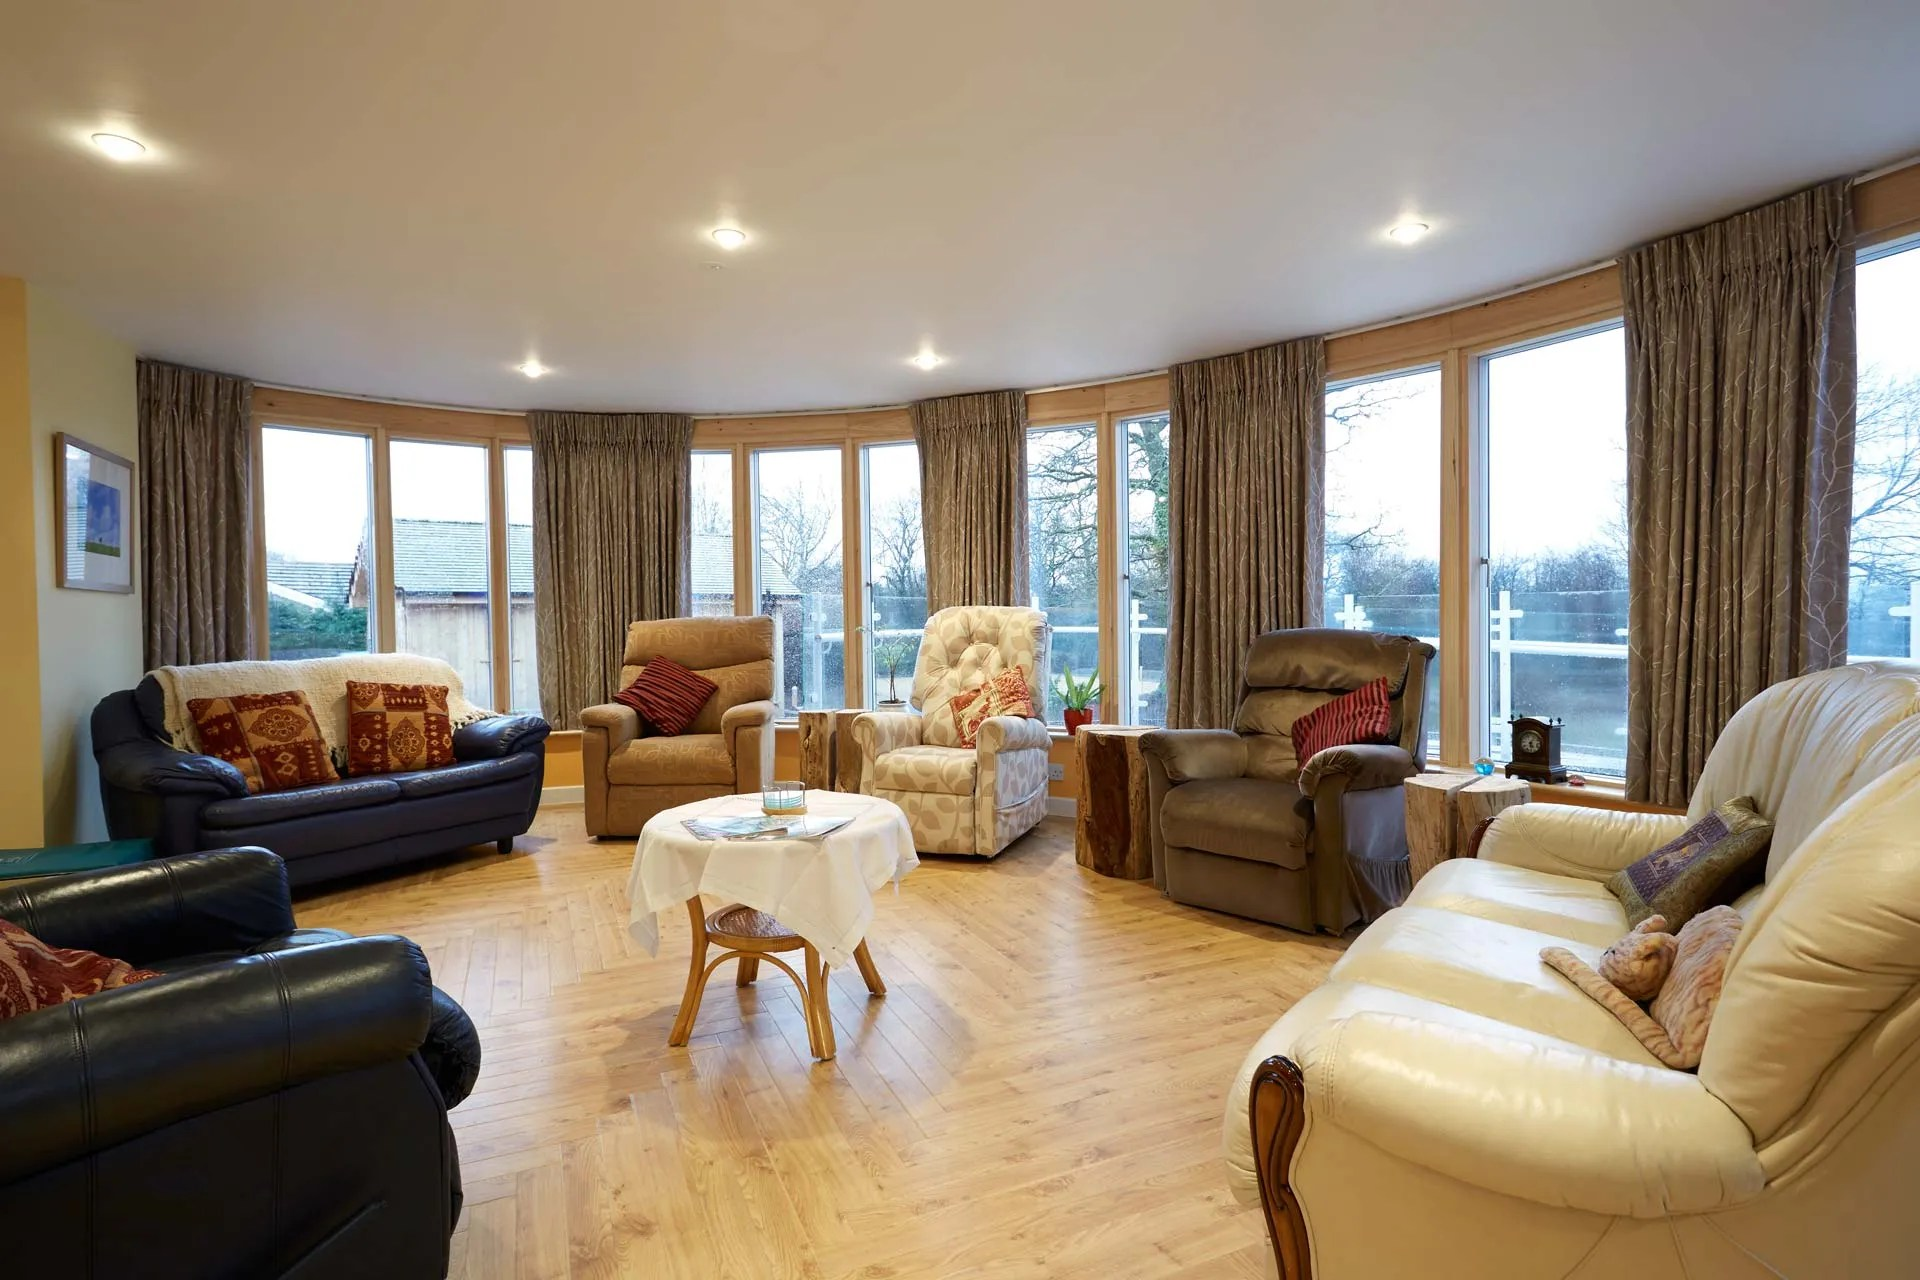 This is our lounge and sun room, with views over the garden. Open for day patients and overnight guests.